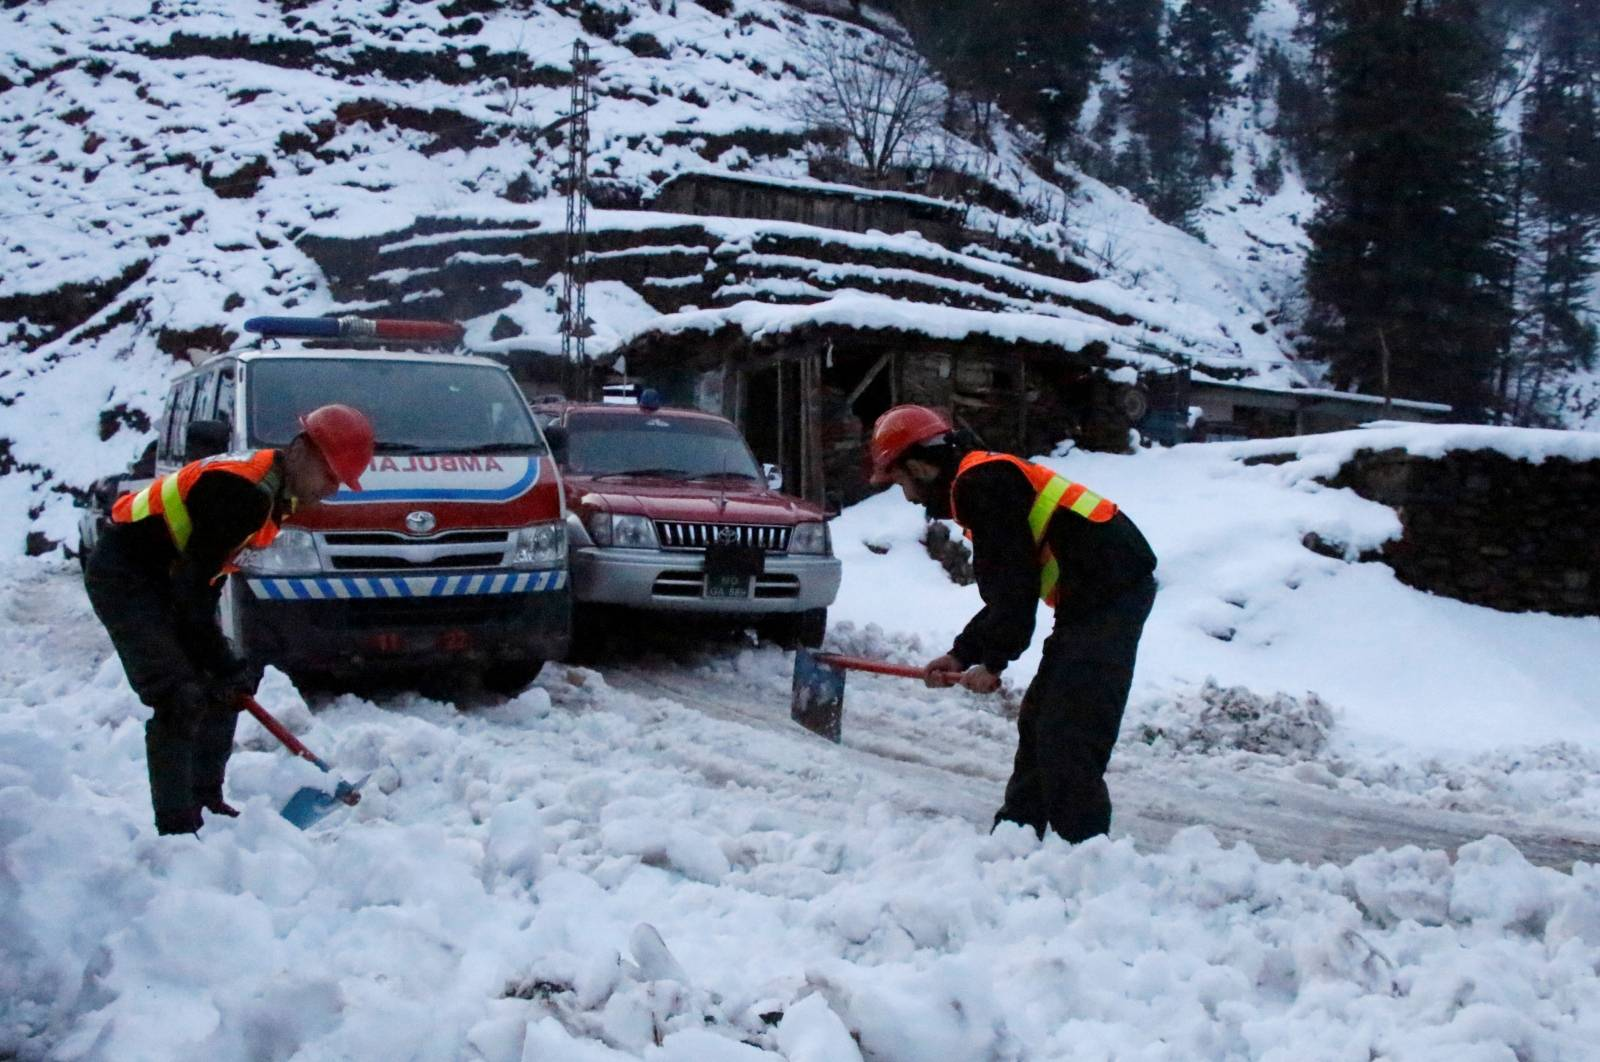 Rescue workers clear a snow-covered road to make way for an ambulance to reach the areas affected by heavy snowfall and avalanches, in Neelum Valley